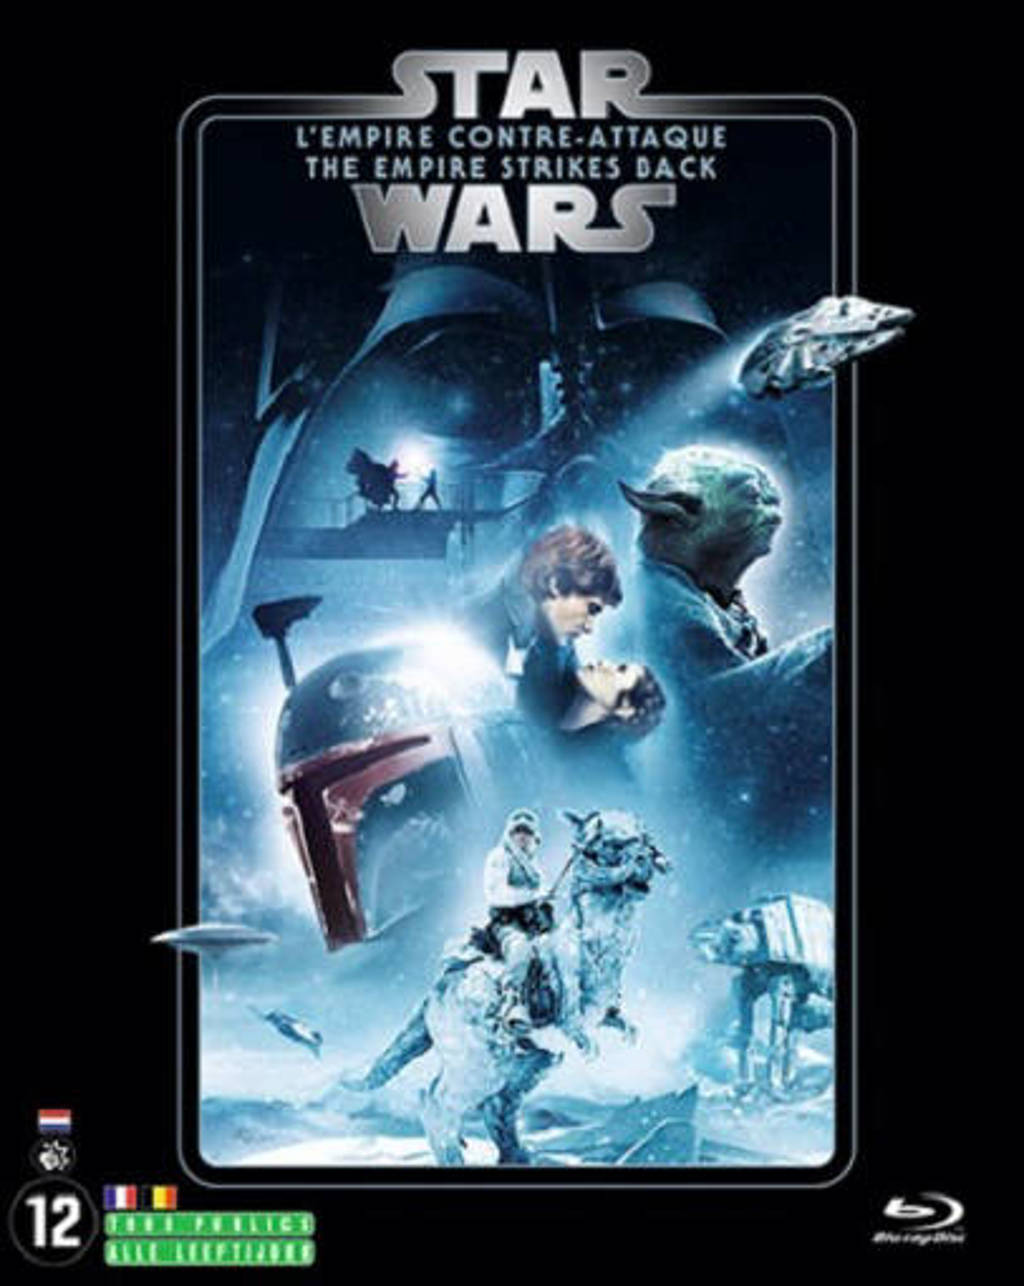 Star Wars Episode 5 - The Empire Strikes Back (Blu-ray)